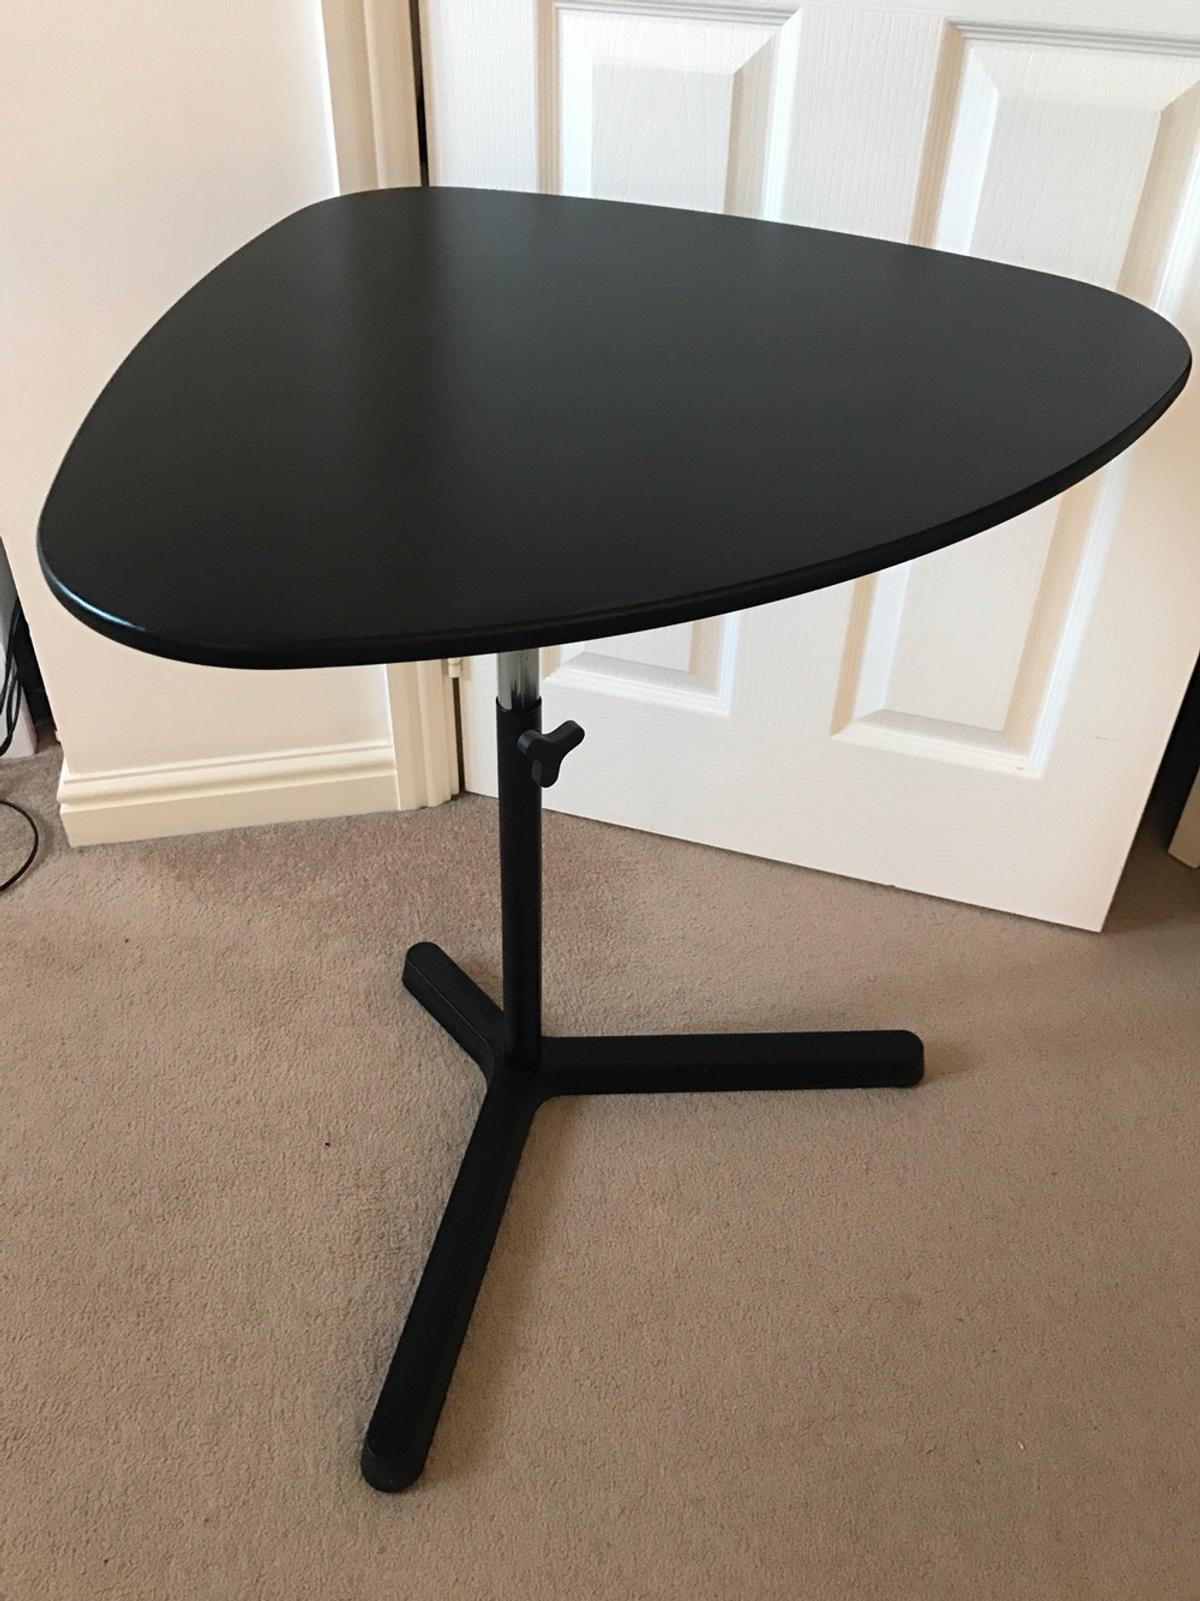 Black Laptop Table Design Ideas